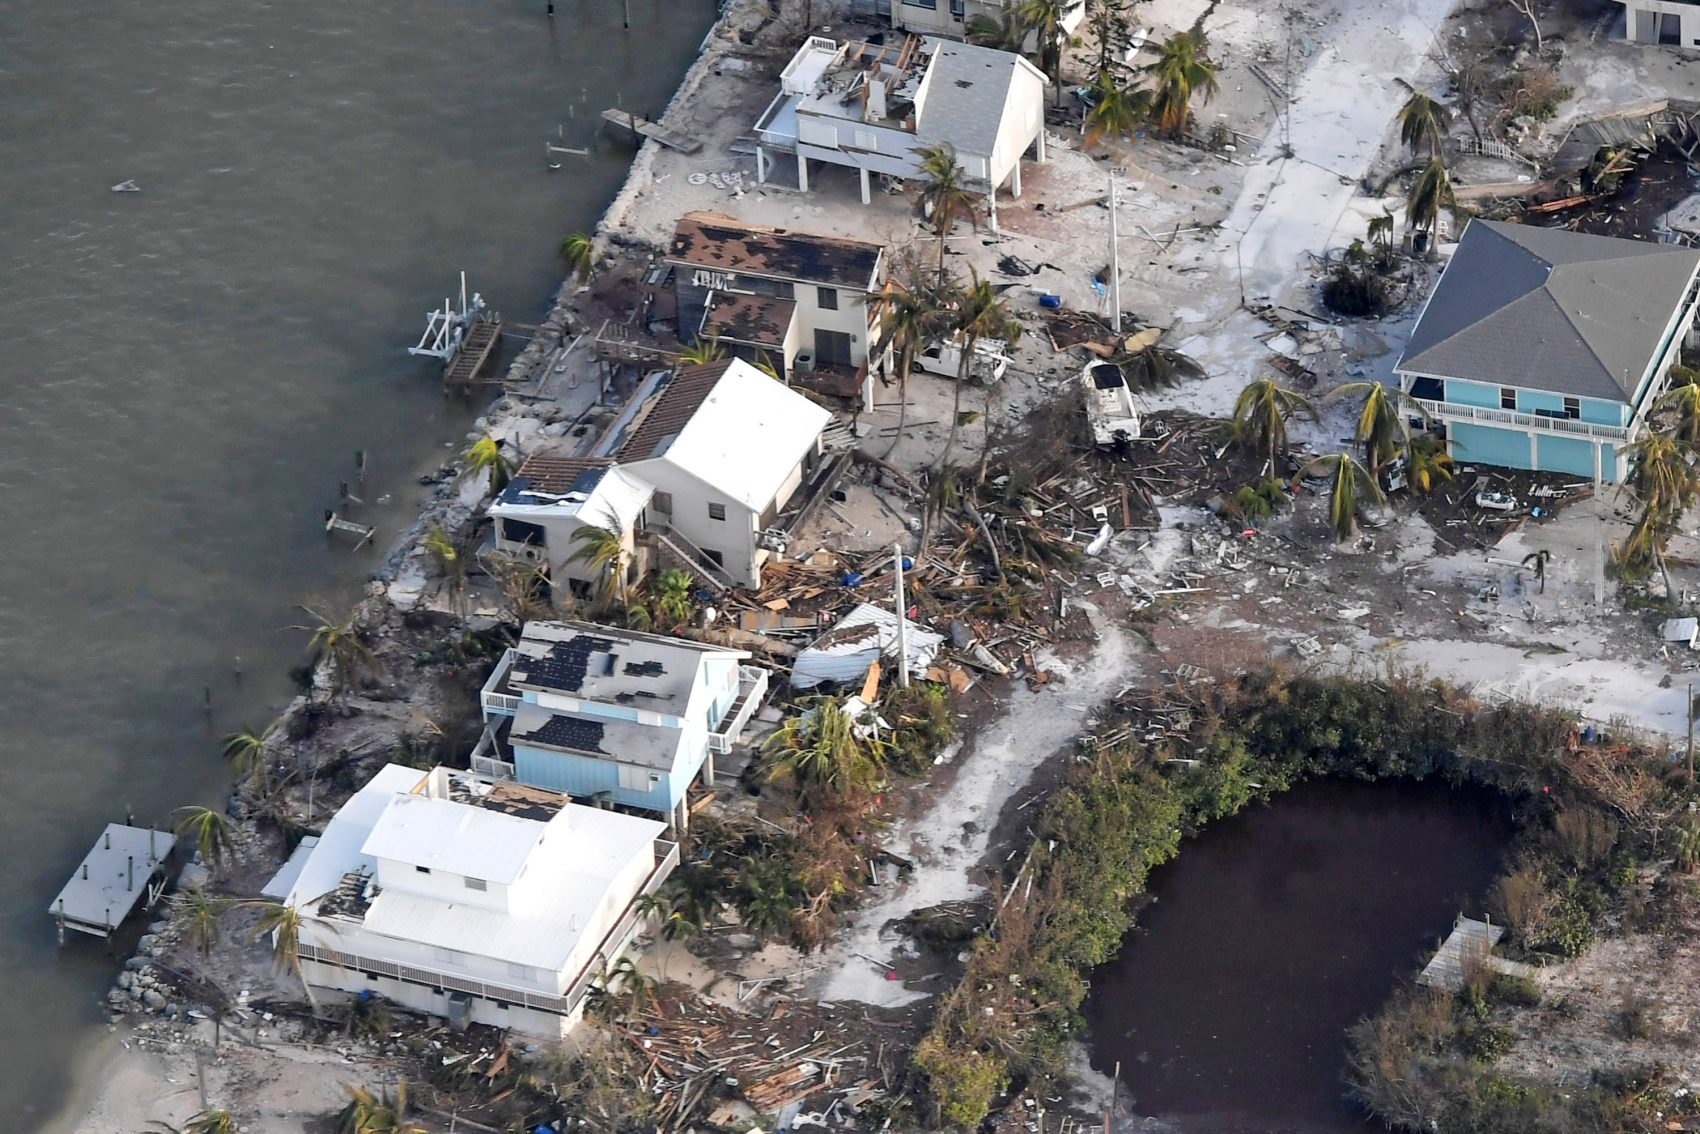 Damaged houses are seen in the aftermath of Hurricane Irma on Sept. 11, 2017 over the Florida Keys, Fla. (Matt McClain -Pool/Getty Images)